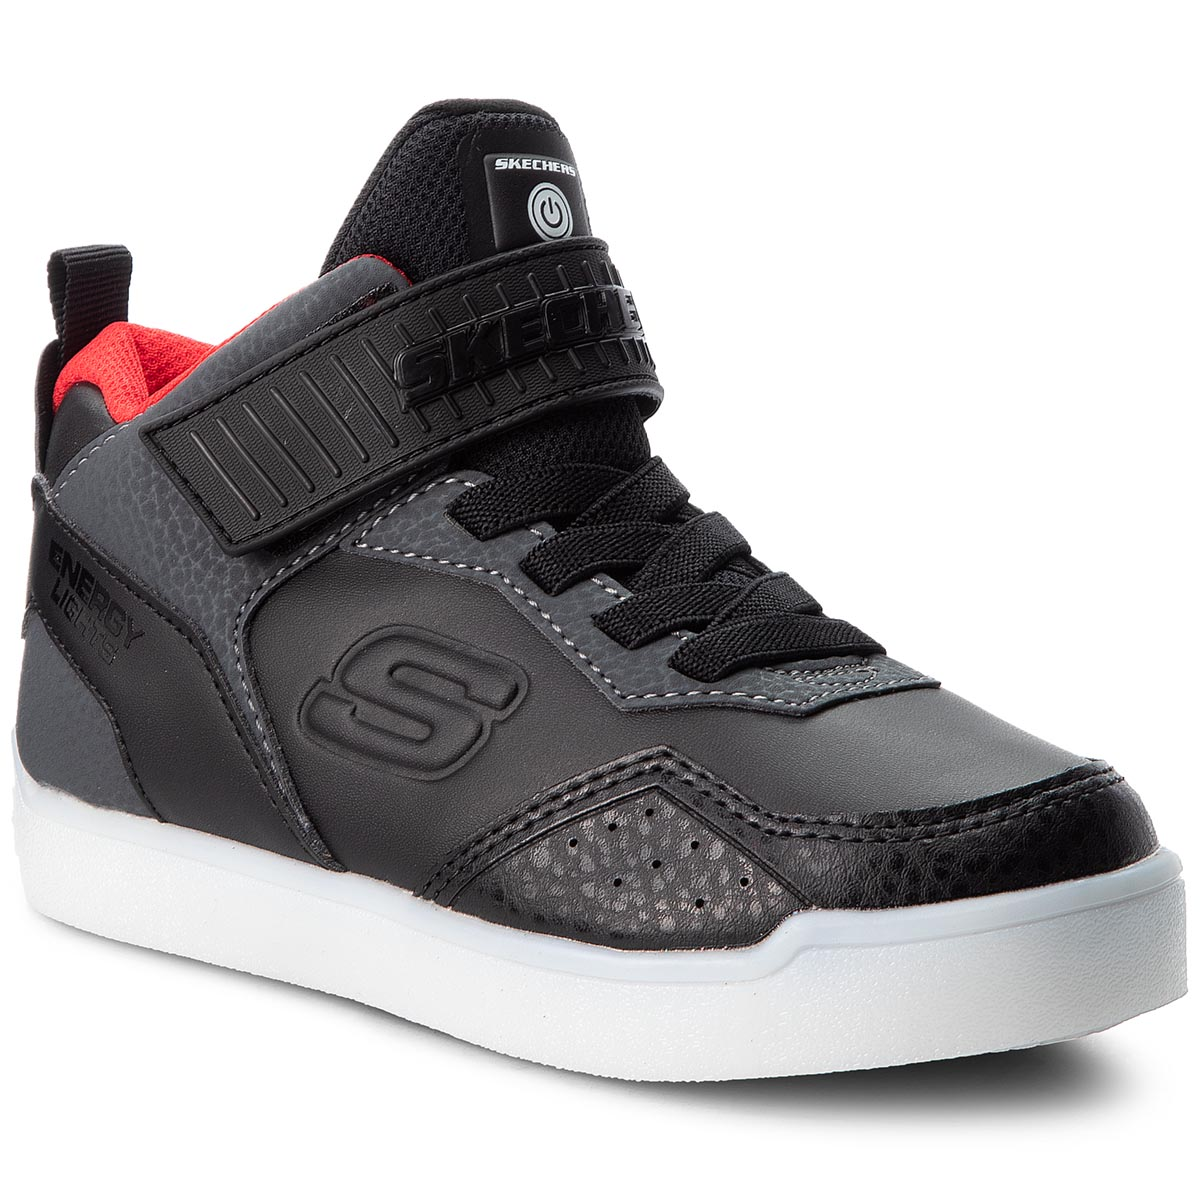 Sneakers SKECHERS - Merrox 90613L/BKRD Black/Red